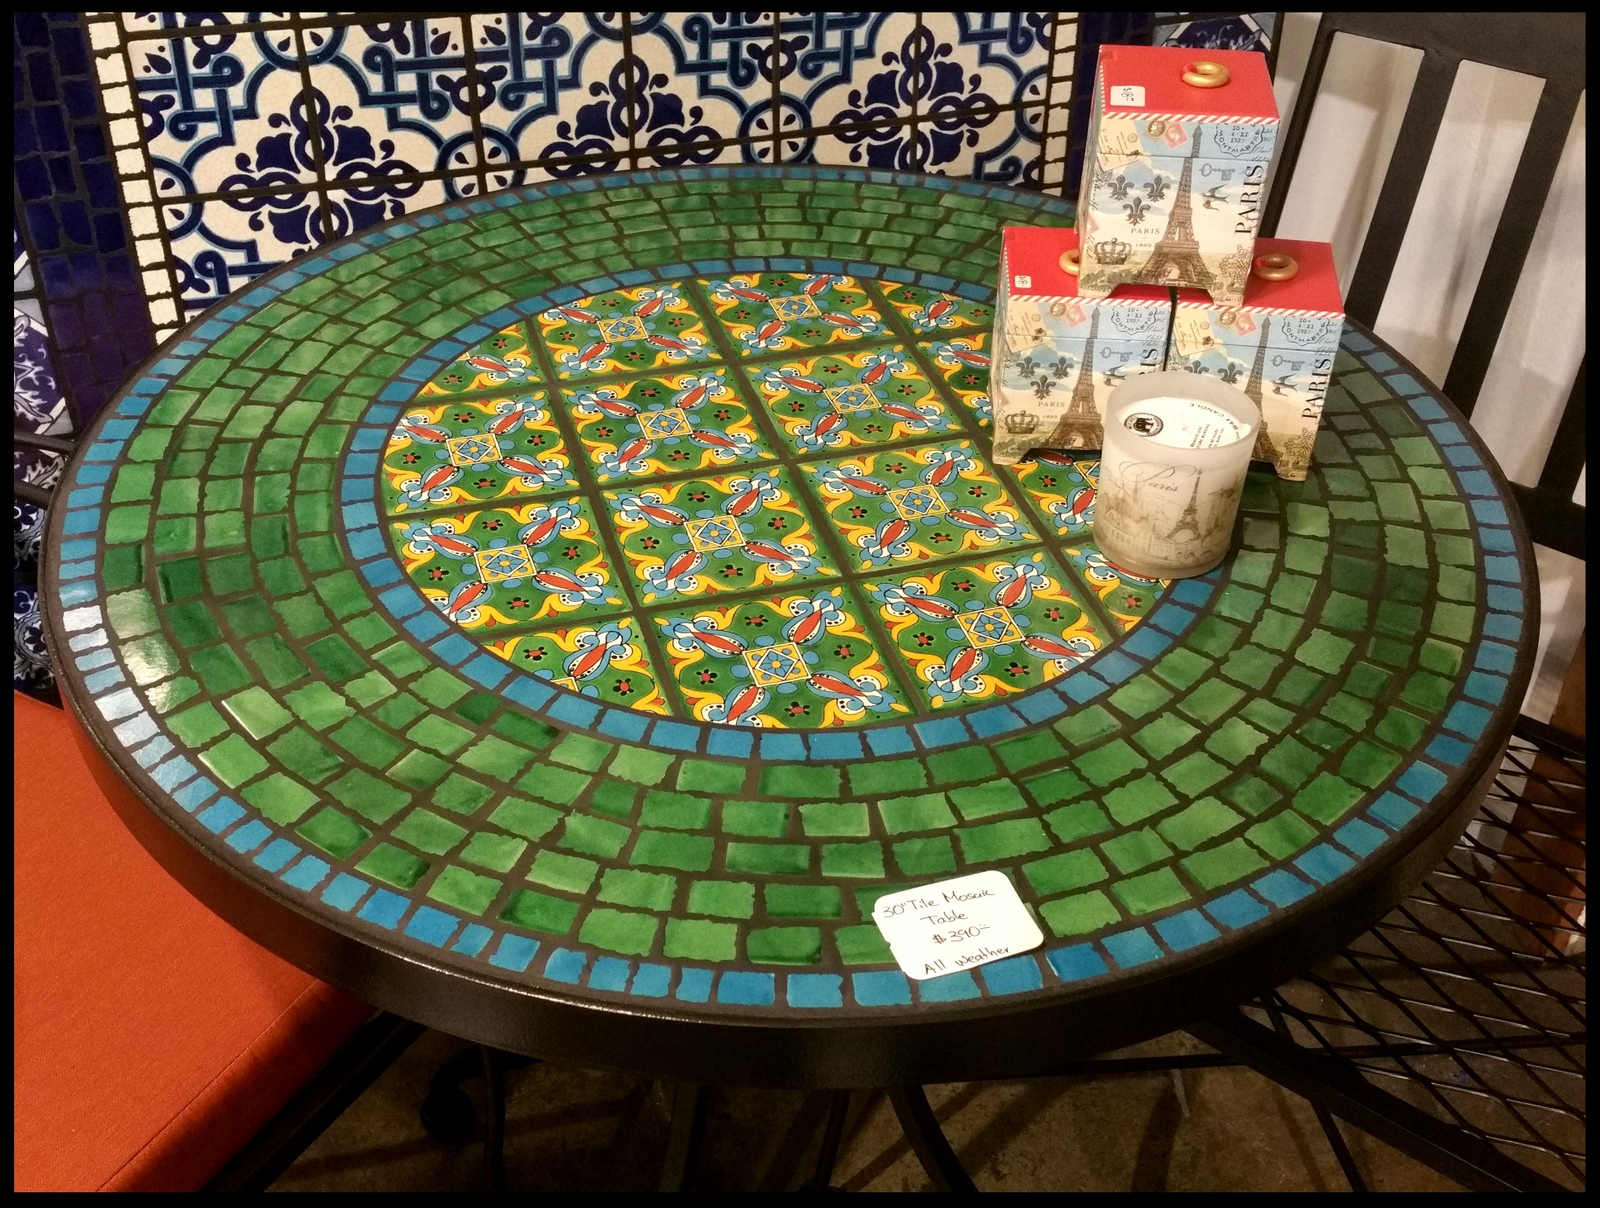 Buy online - Basics mosaic tiles patios ...